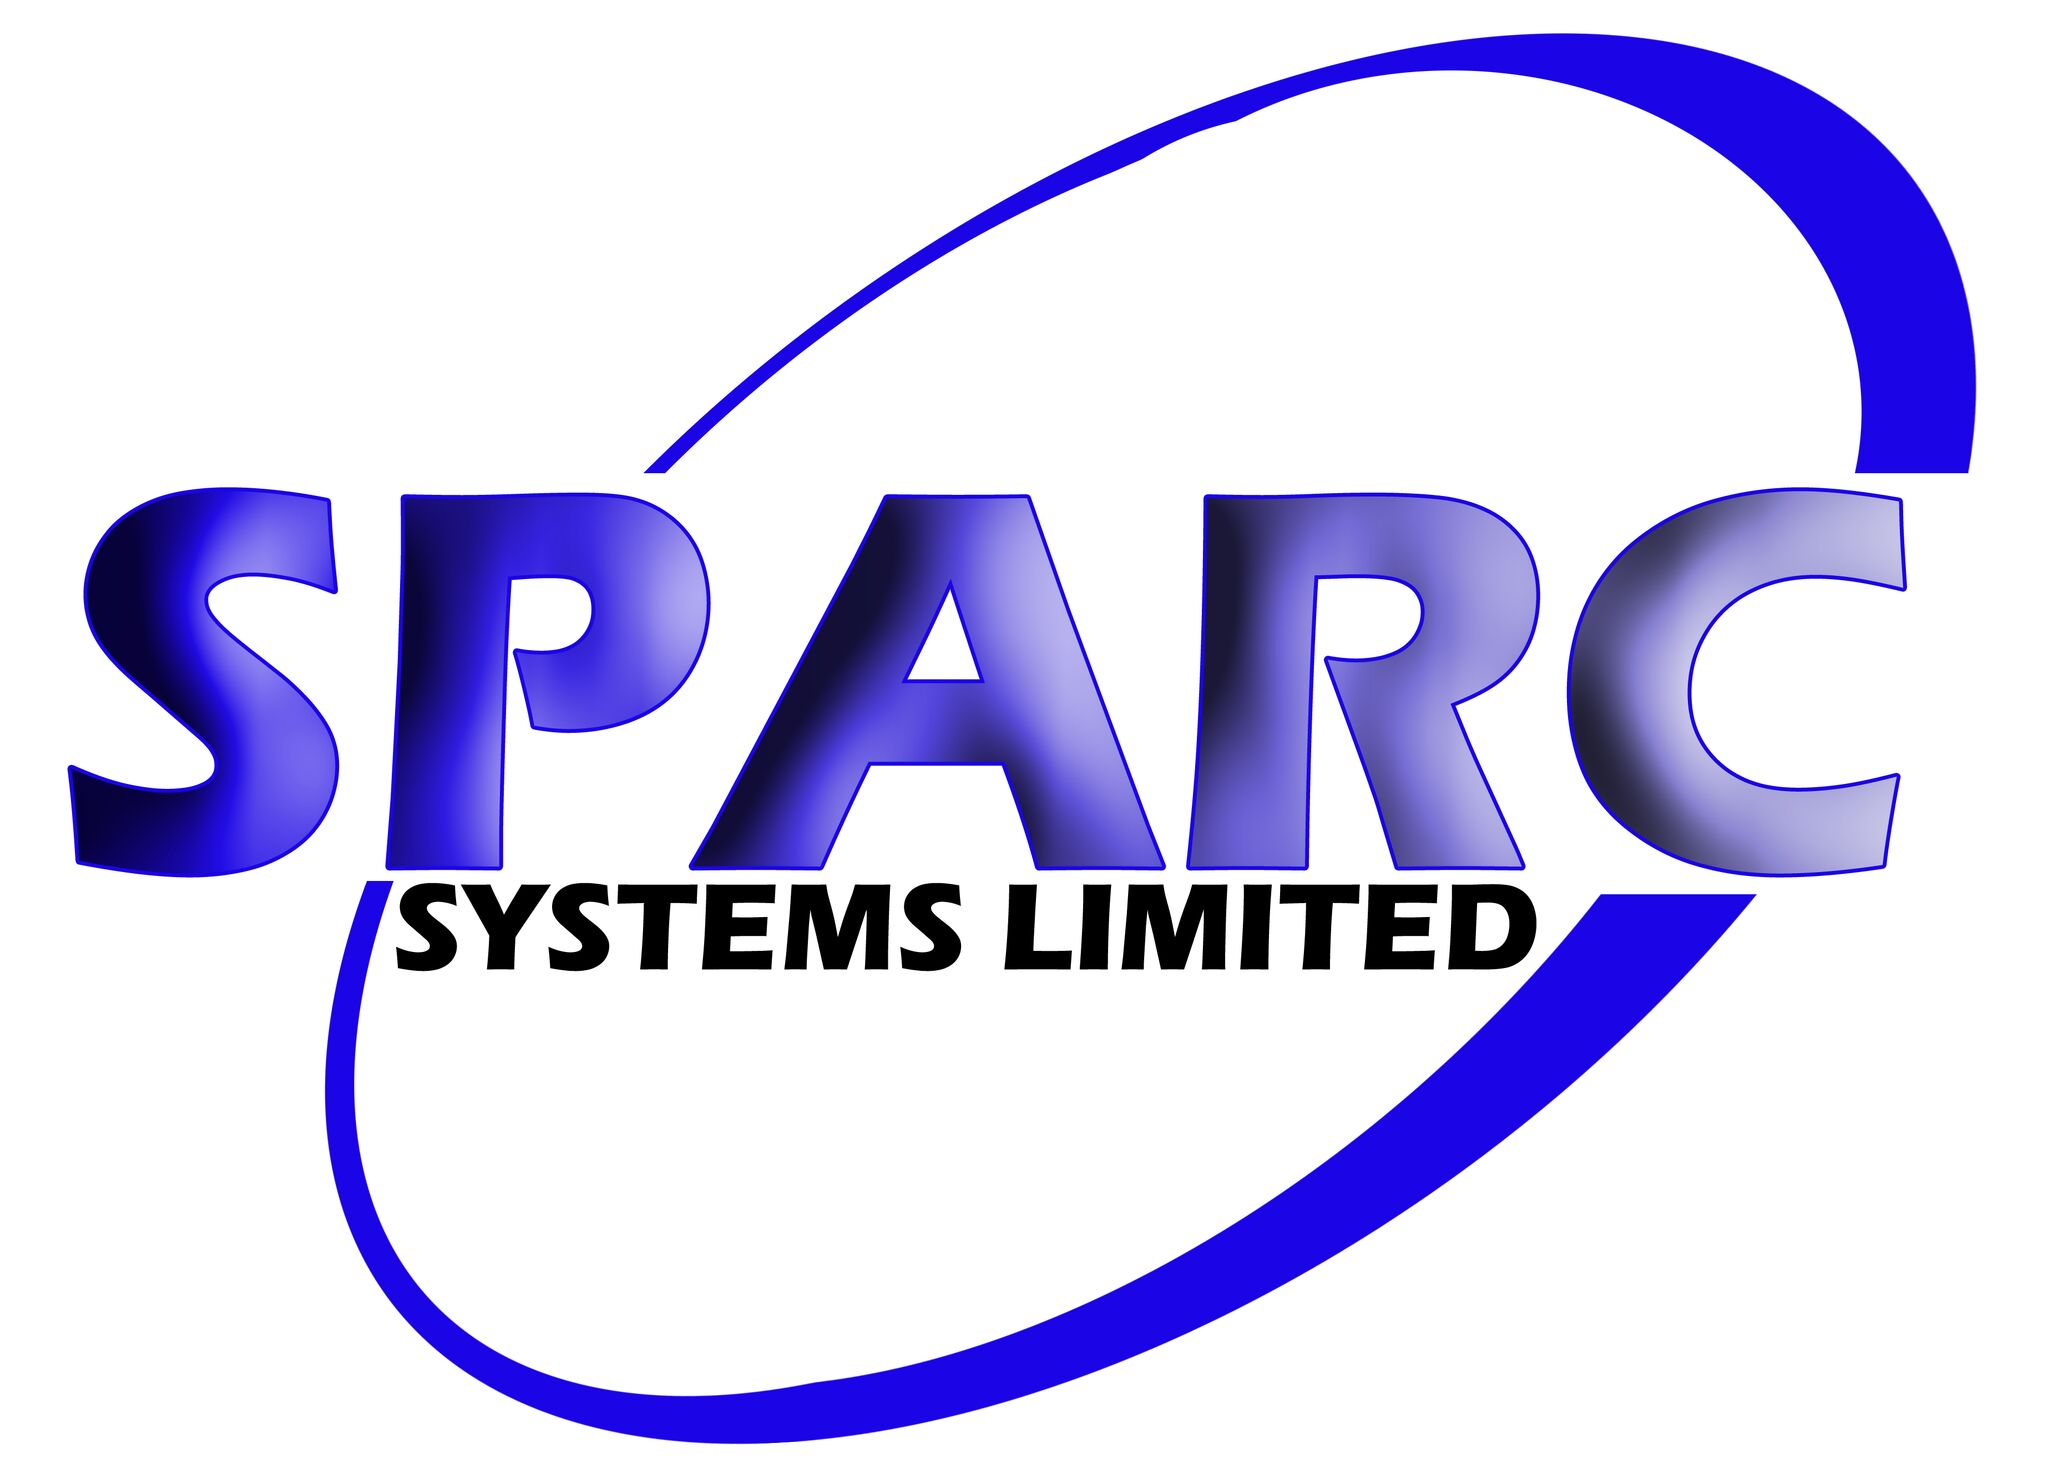 Sparc Systems